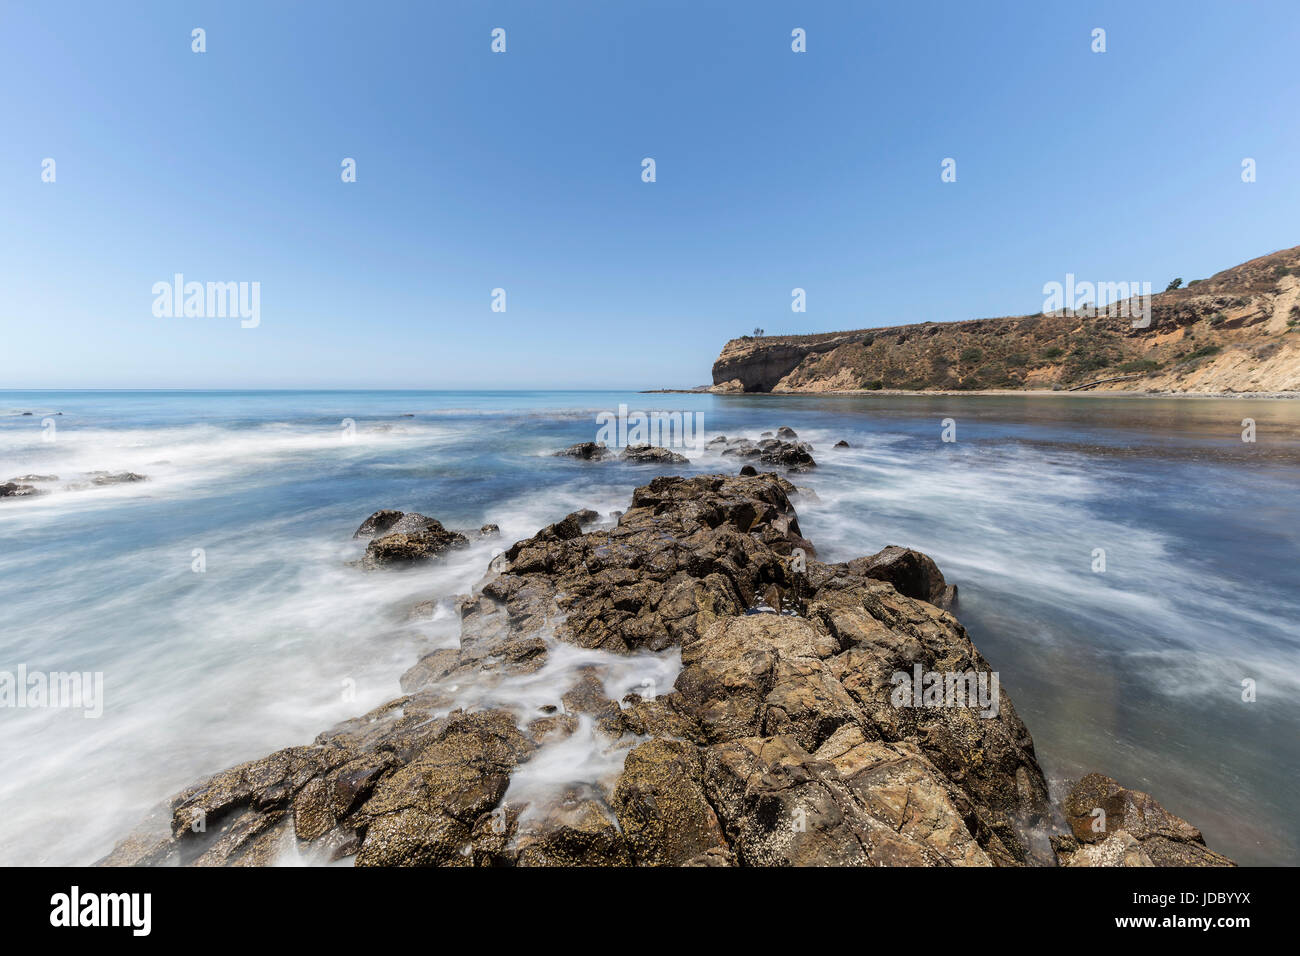 Pacific ocean motion blur water at Abalone Cove Shoreline Park in Southern California. - Stock Image